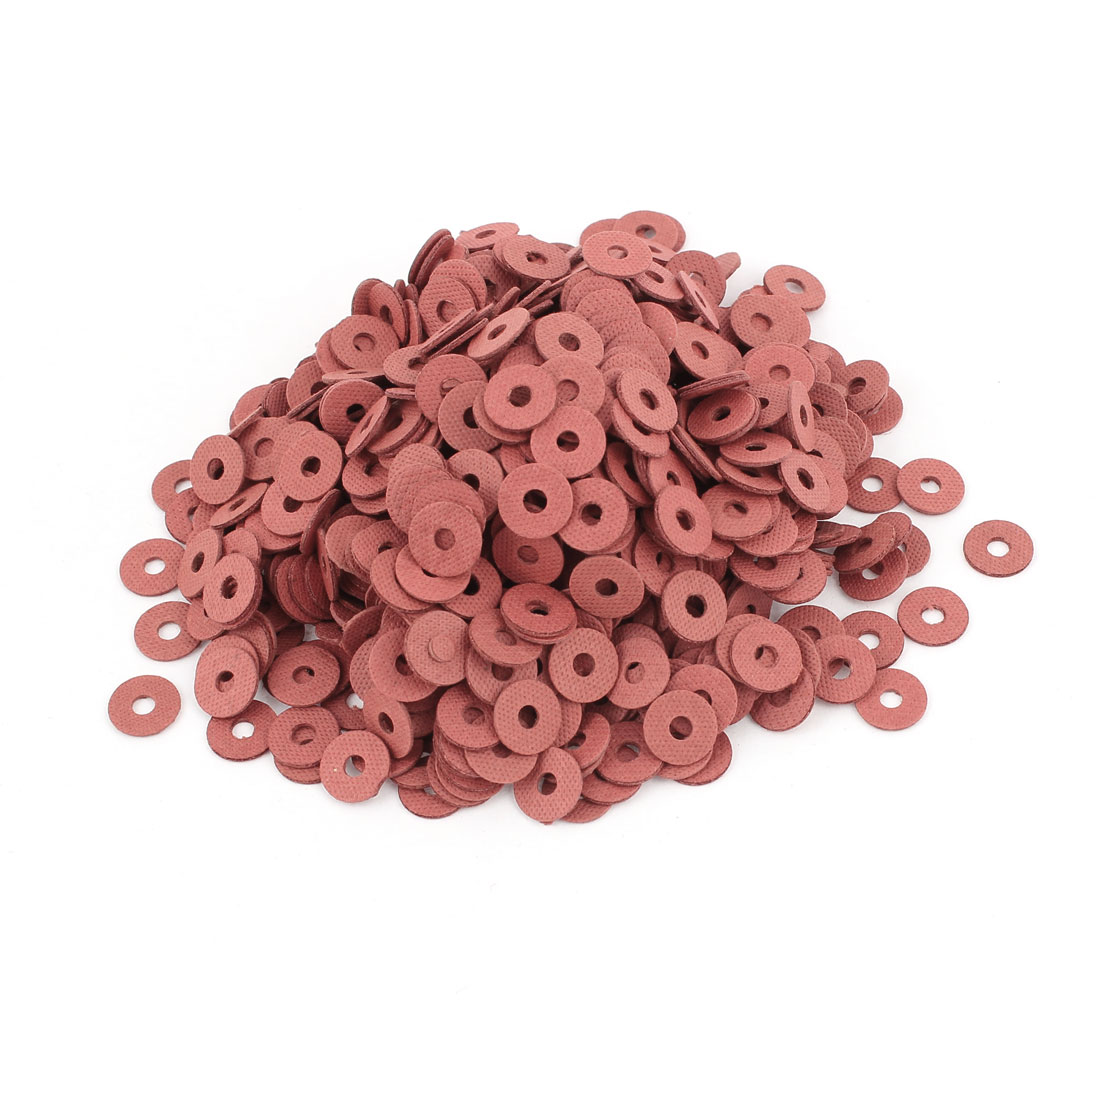 Fiber Flat Insulating Washer Ring 3mmx10mmx1mm 1000Pcs Red for Screws